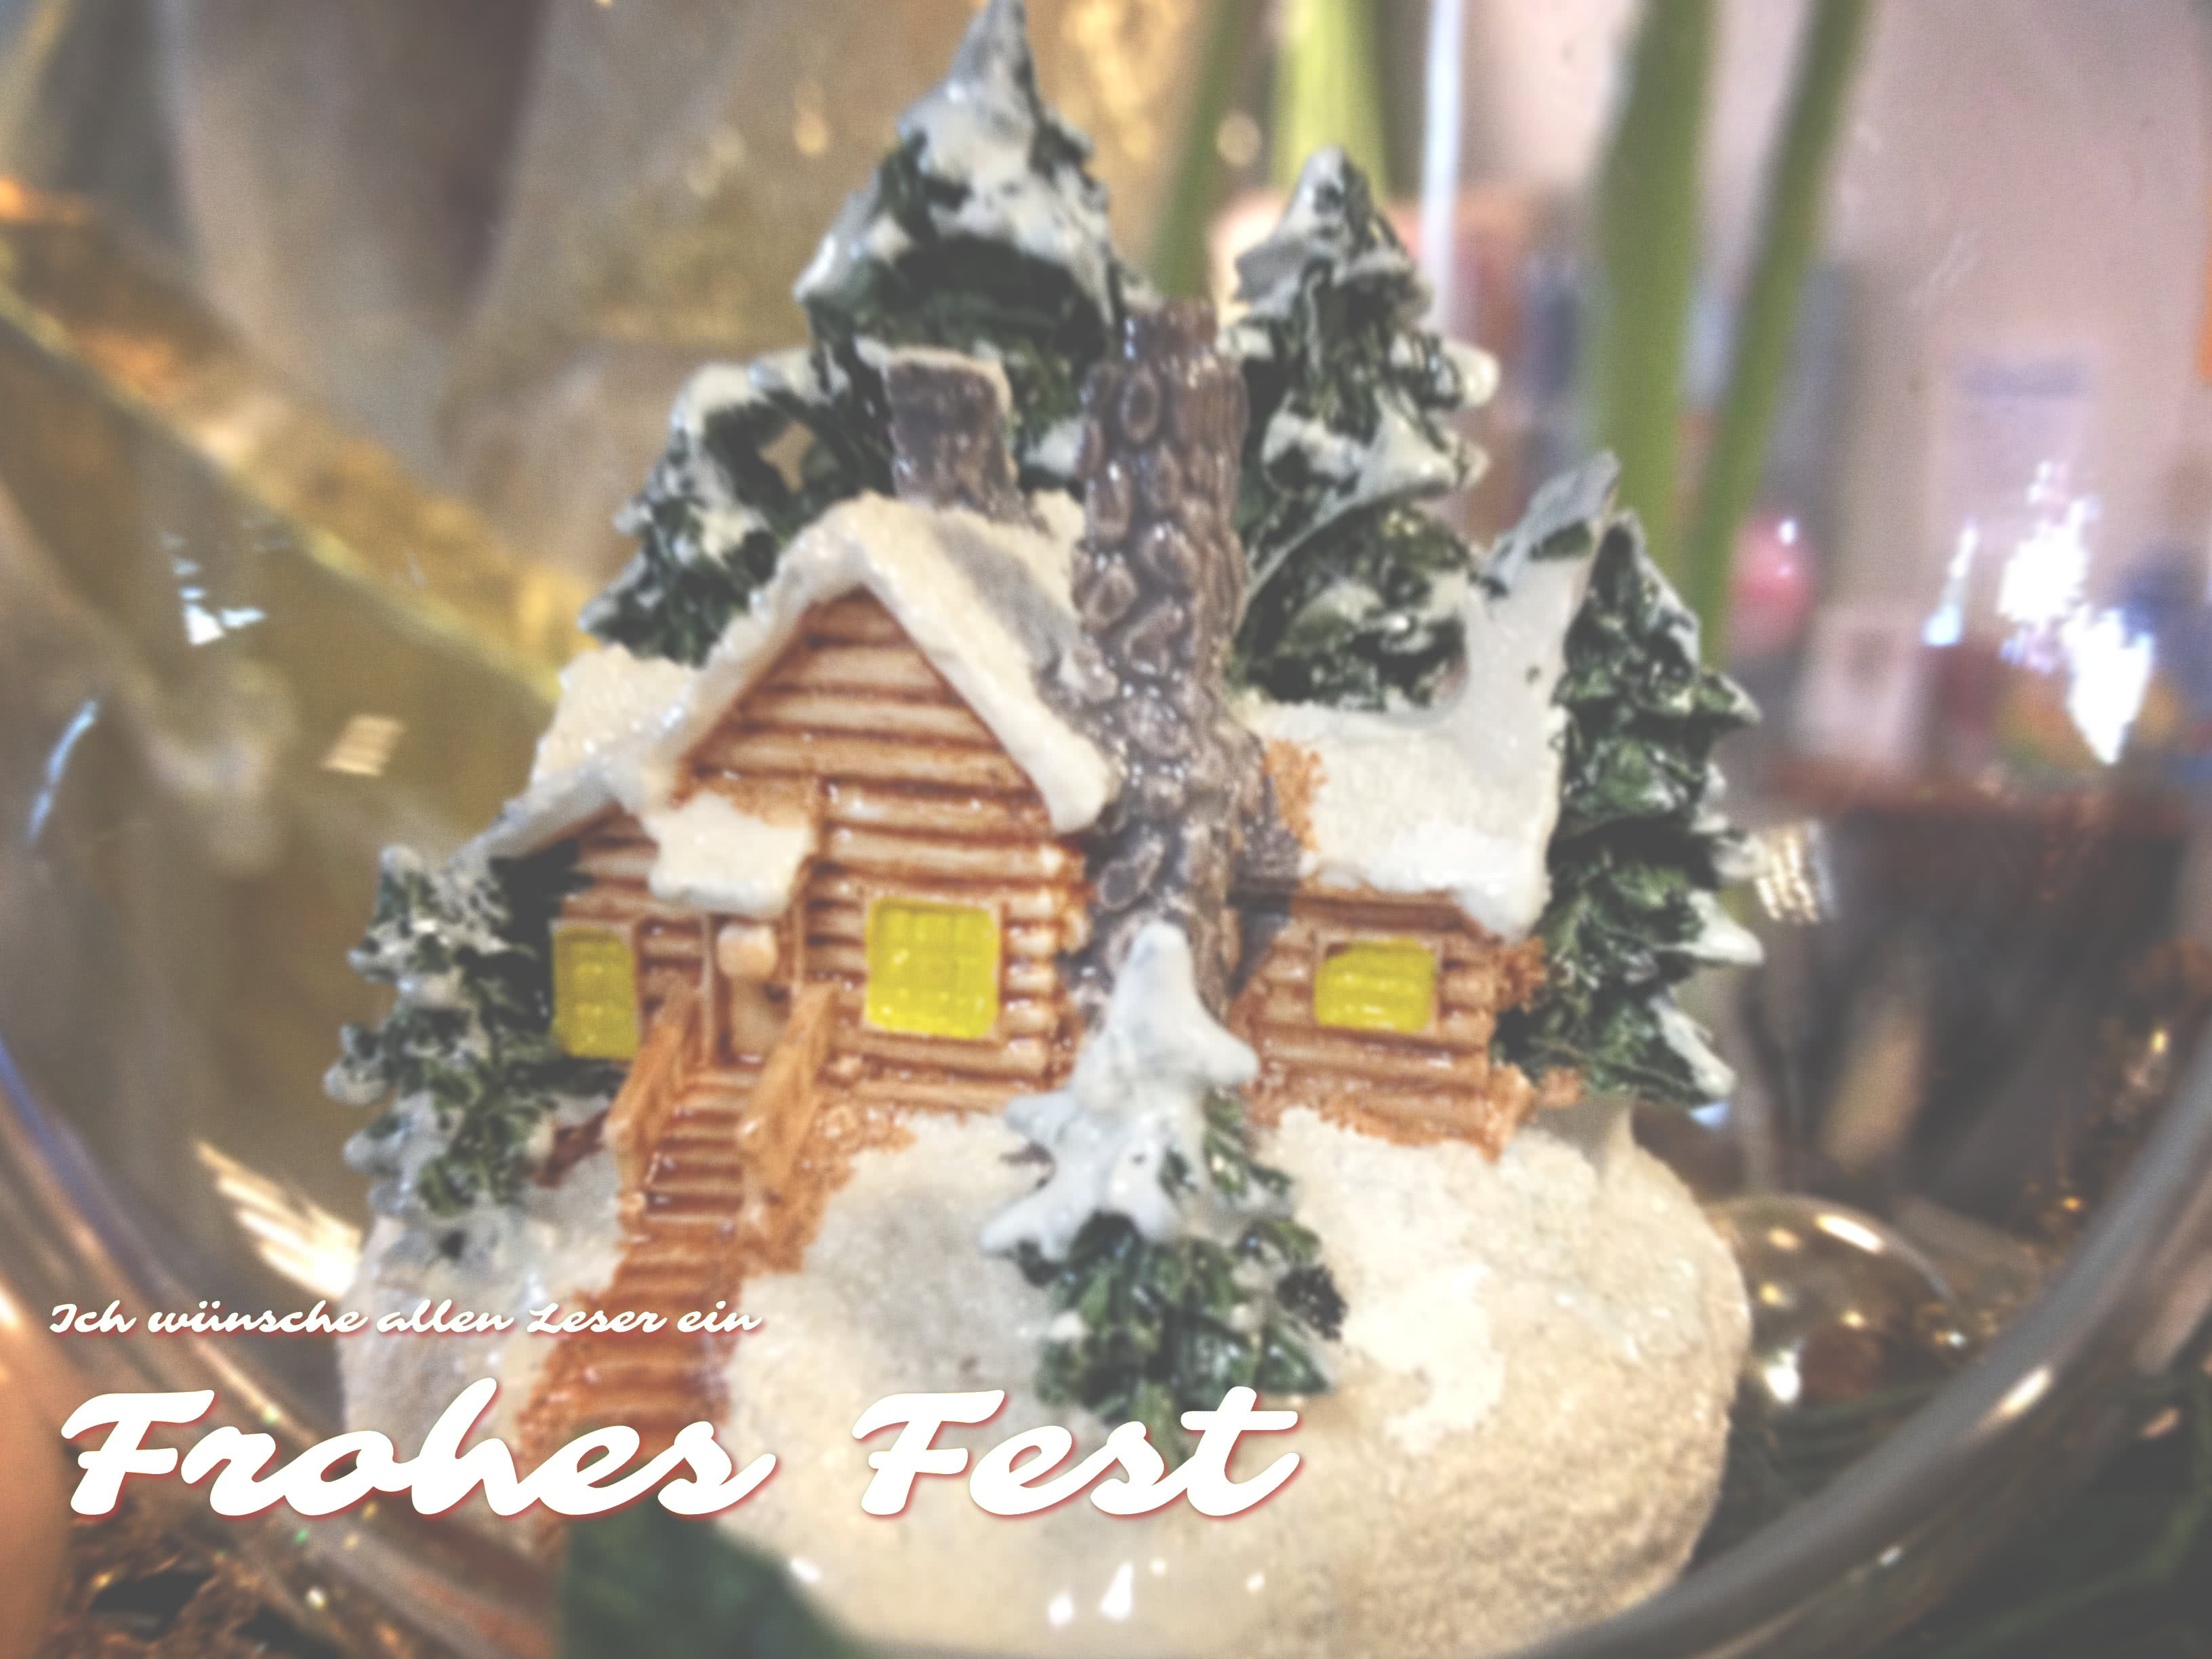 Frohes Fest 2015